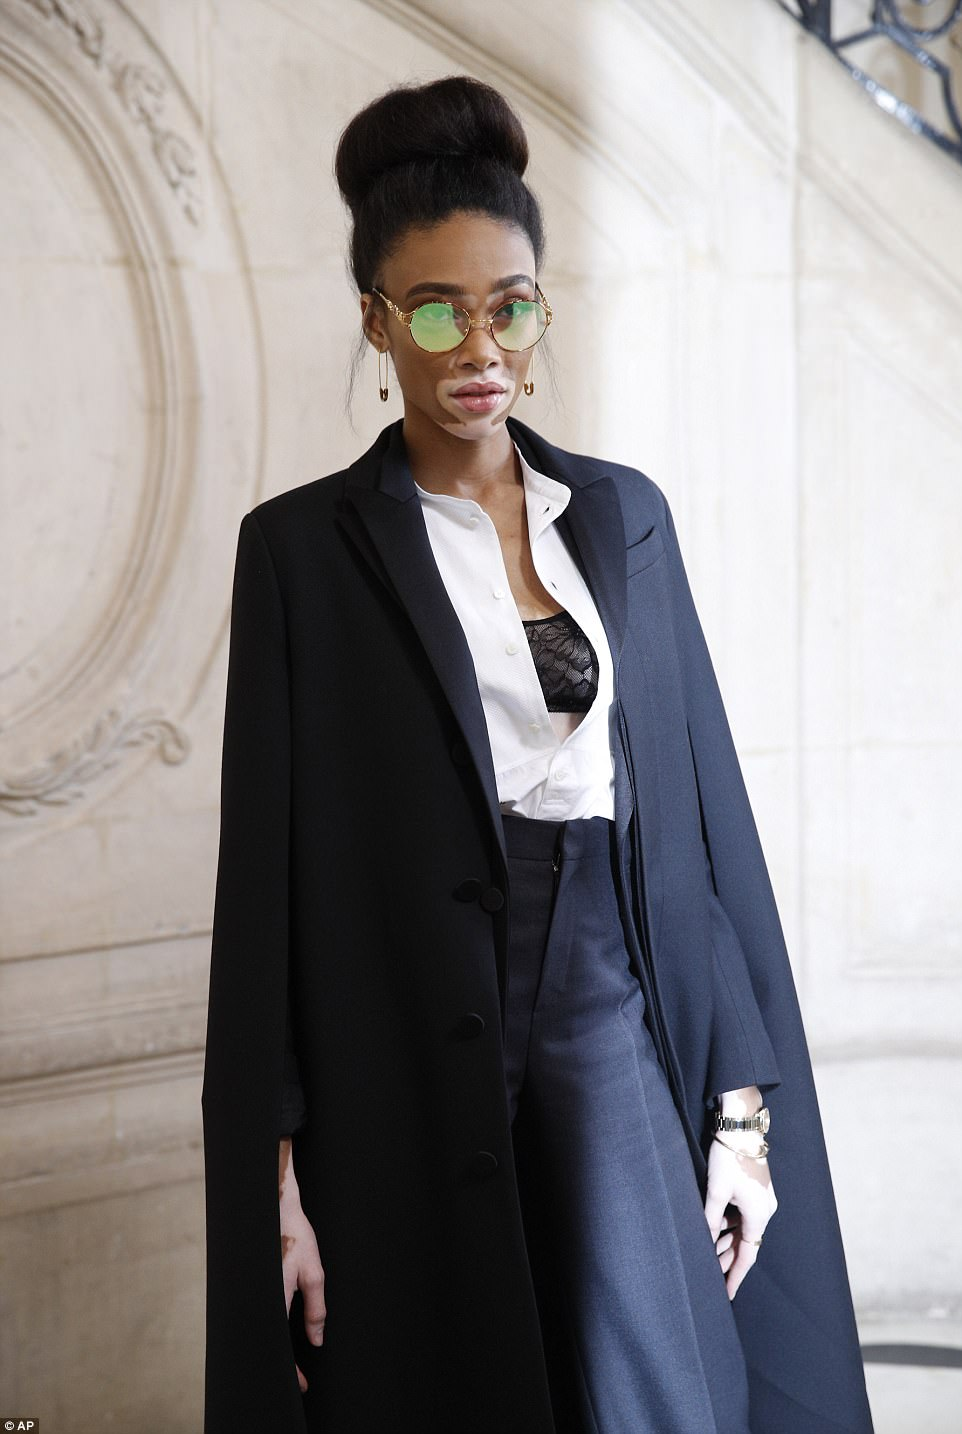 Sensational: Winnie - who was discovered on America's Next Top Model - rivalled Naomi on the style front, as she oozed androgynous chic in her look